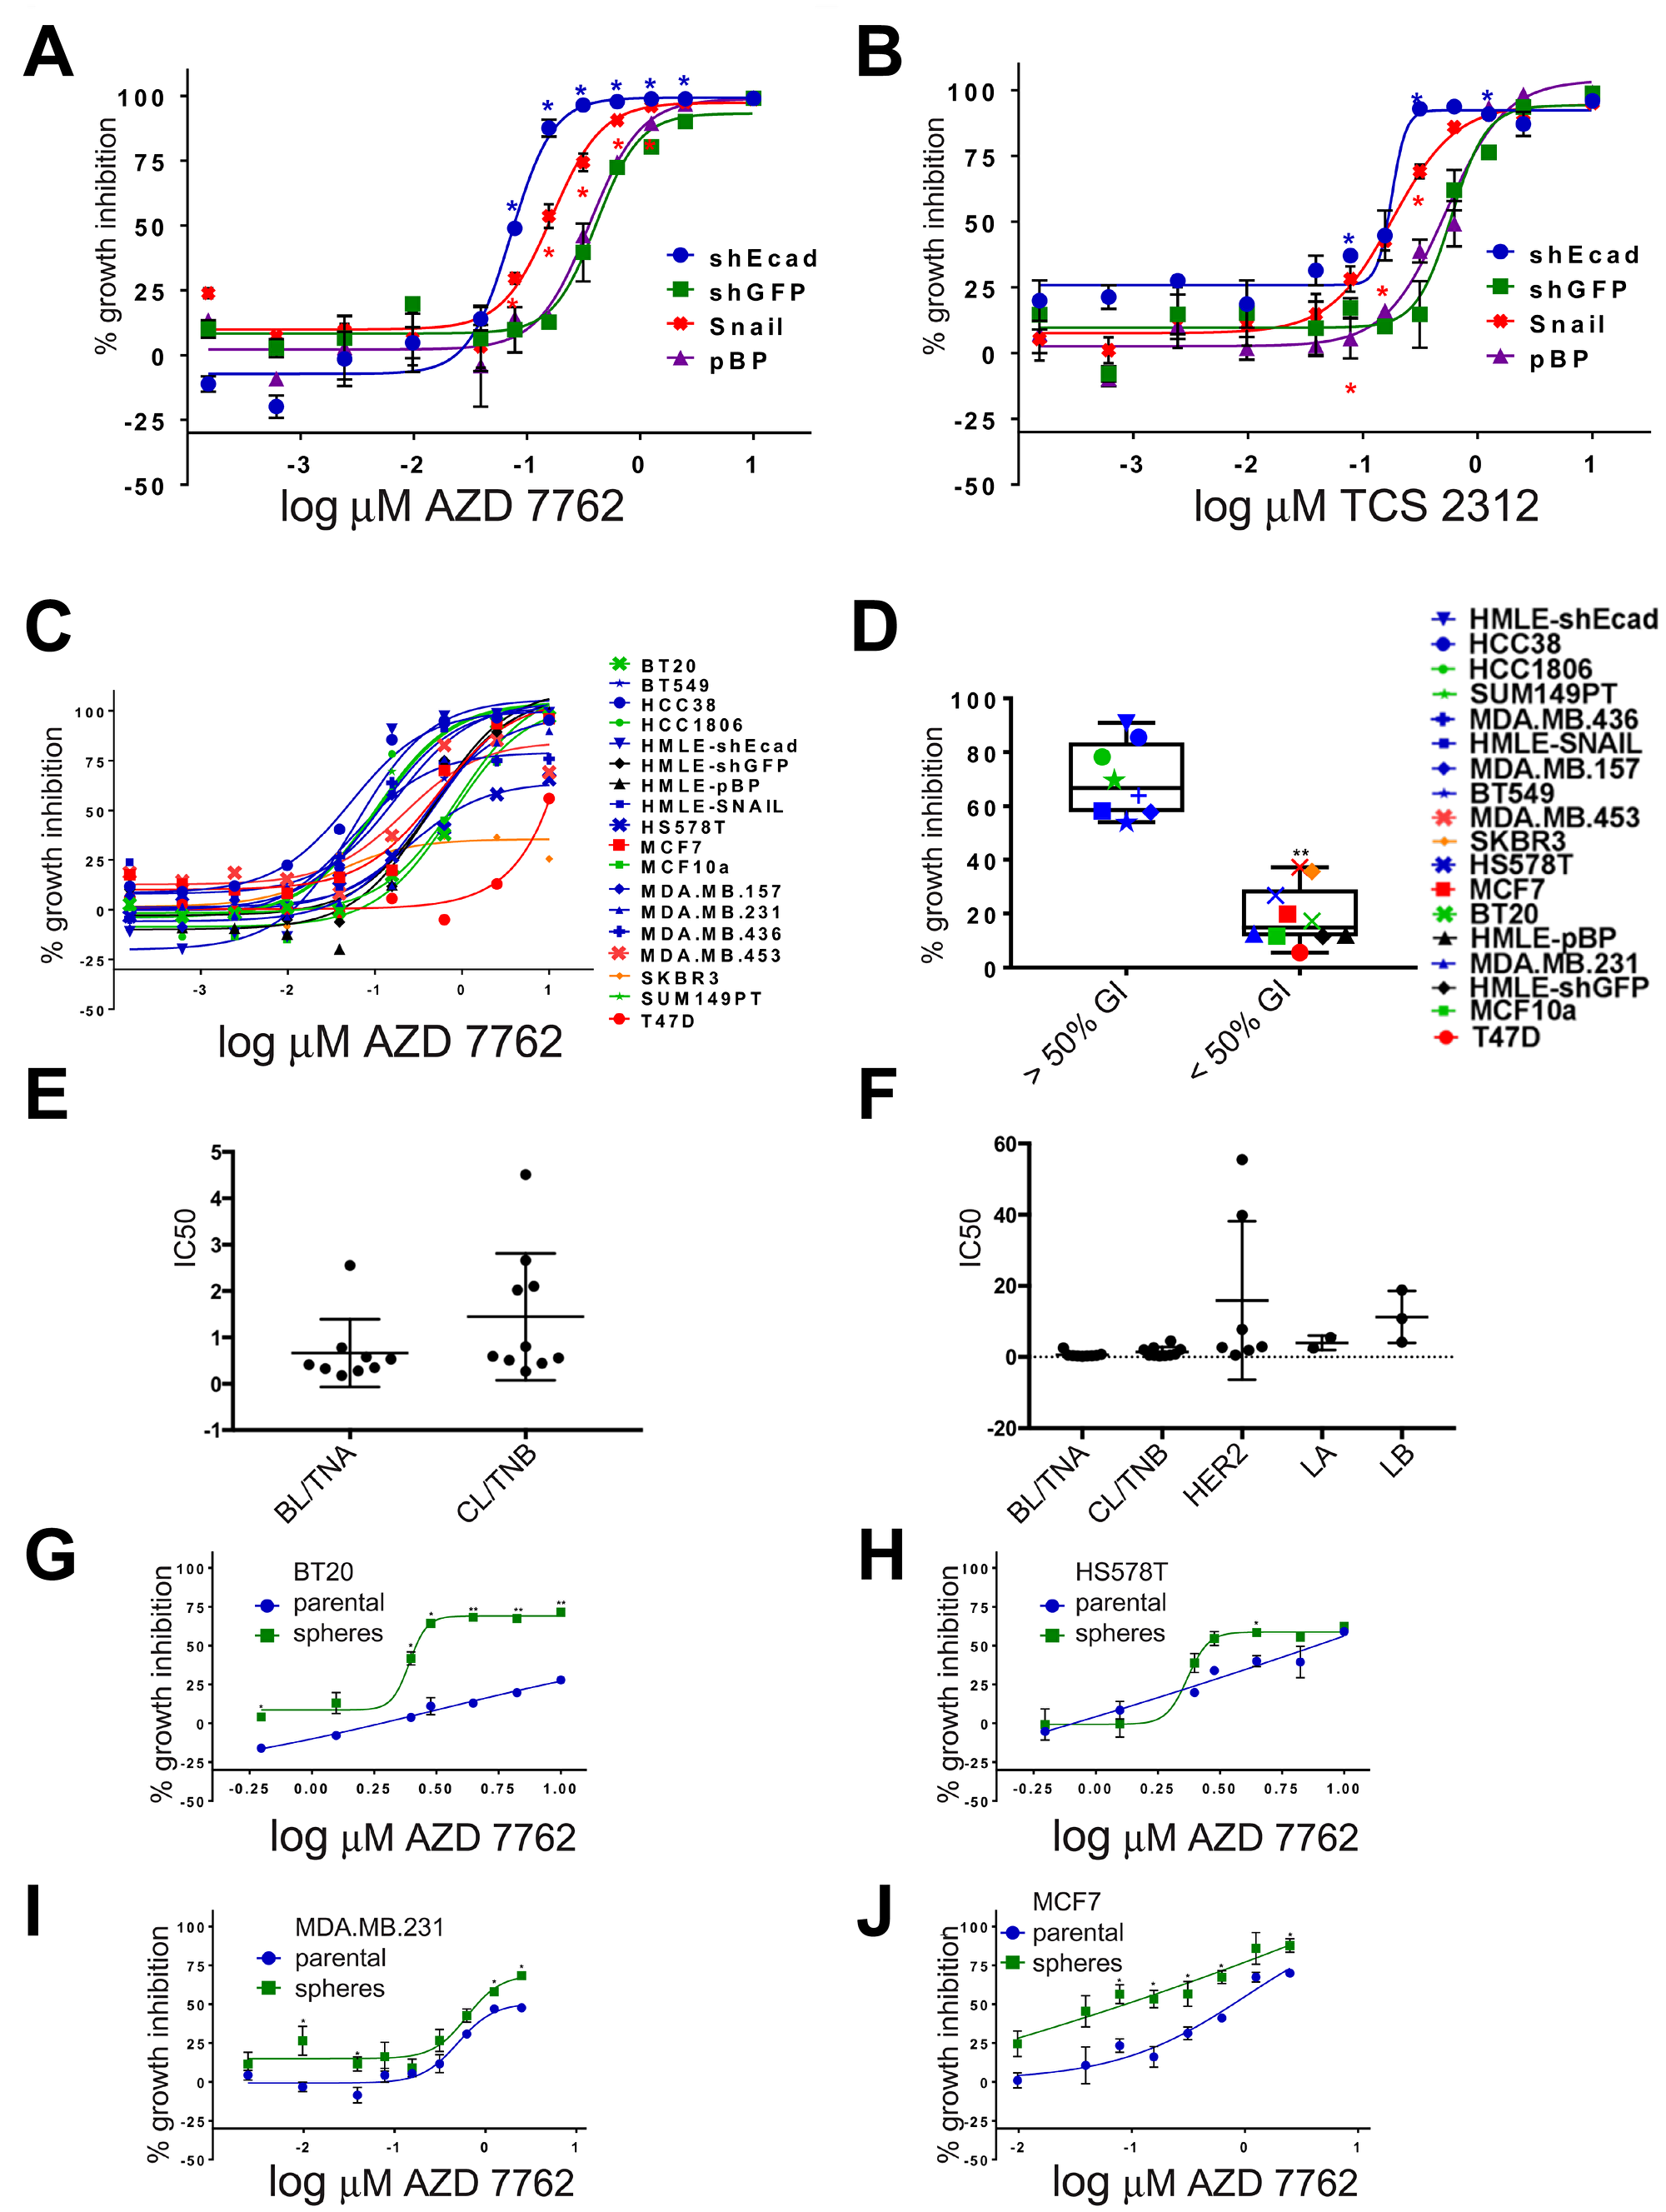 Dose-dependent sensitivity of breast cancer cell lines to CHK1 inhibitors.